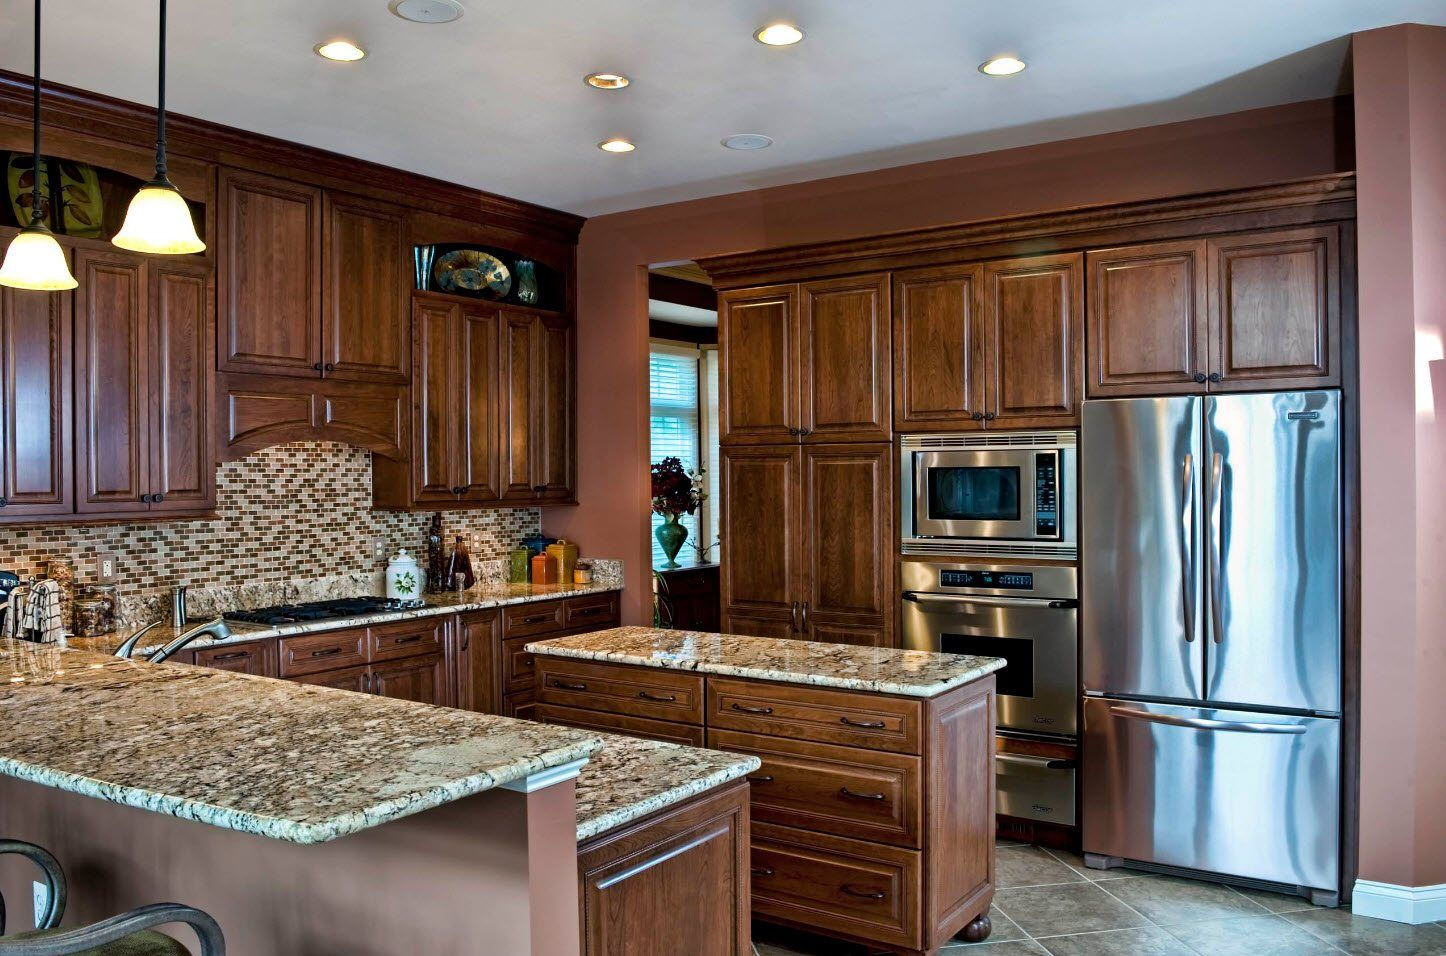 Oak trimmed and carved kitchen gacades and marble top of the island and butcher block